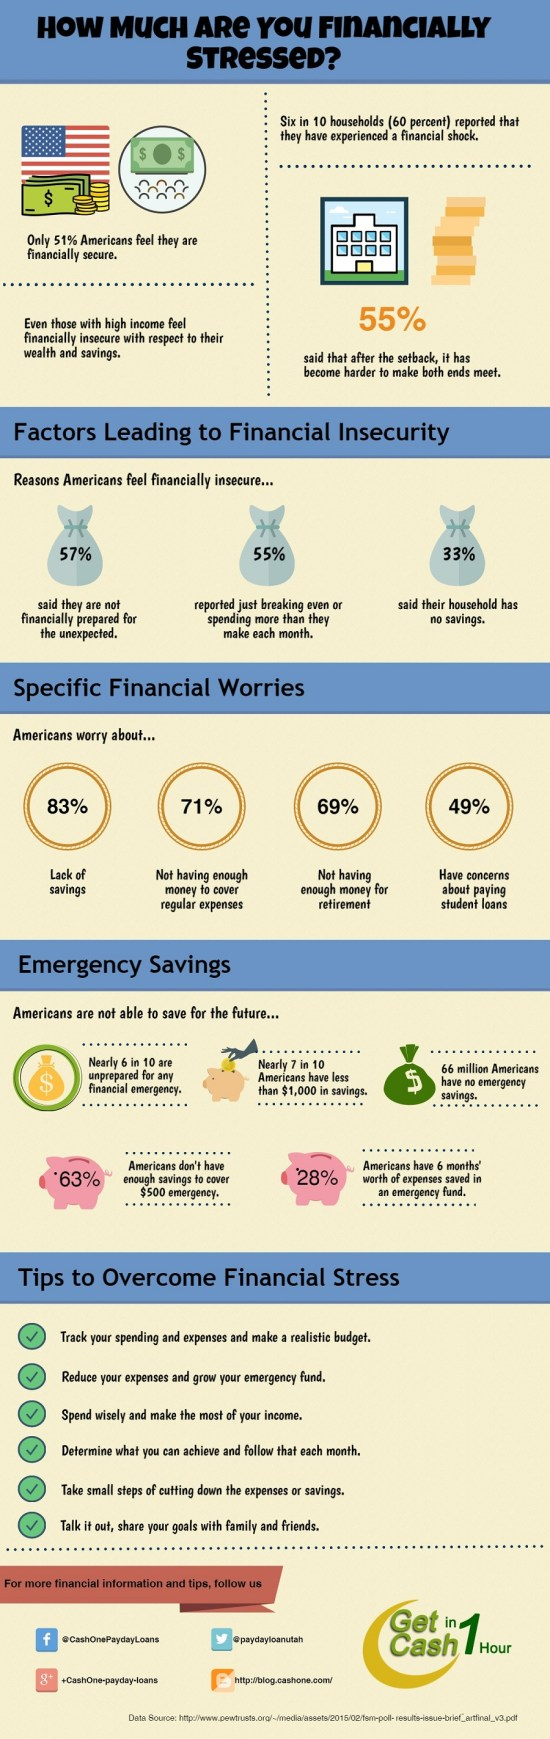 Know how much are you financially stressed